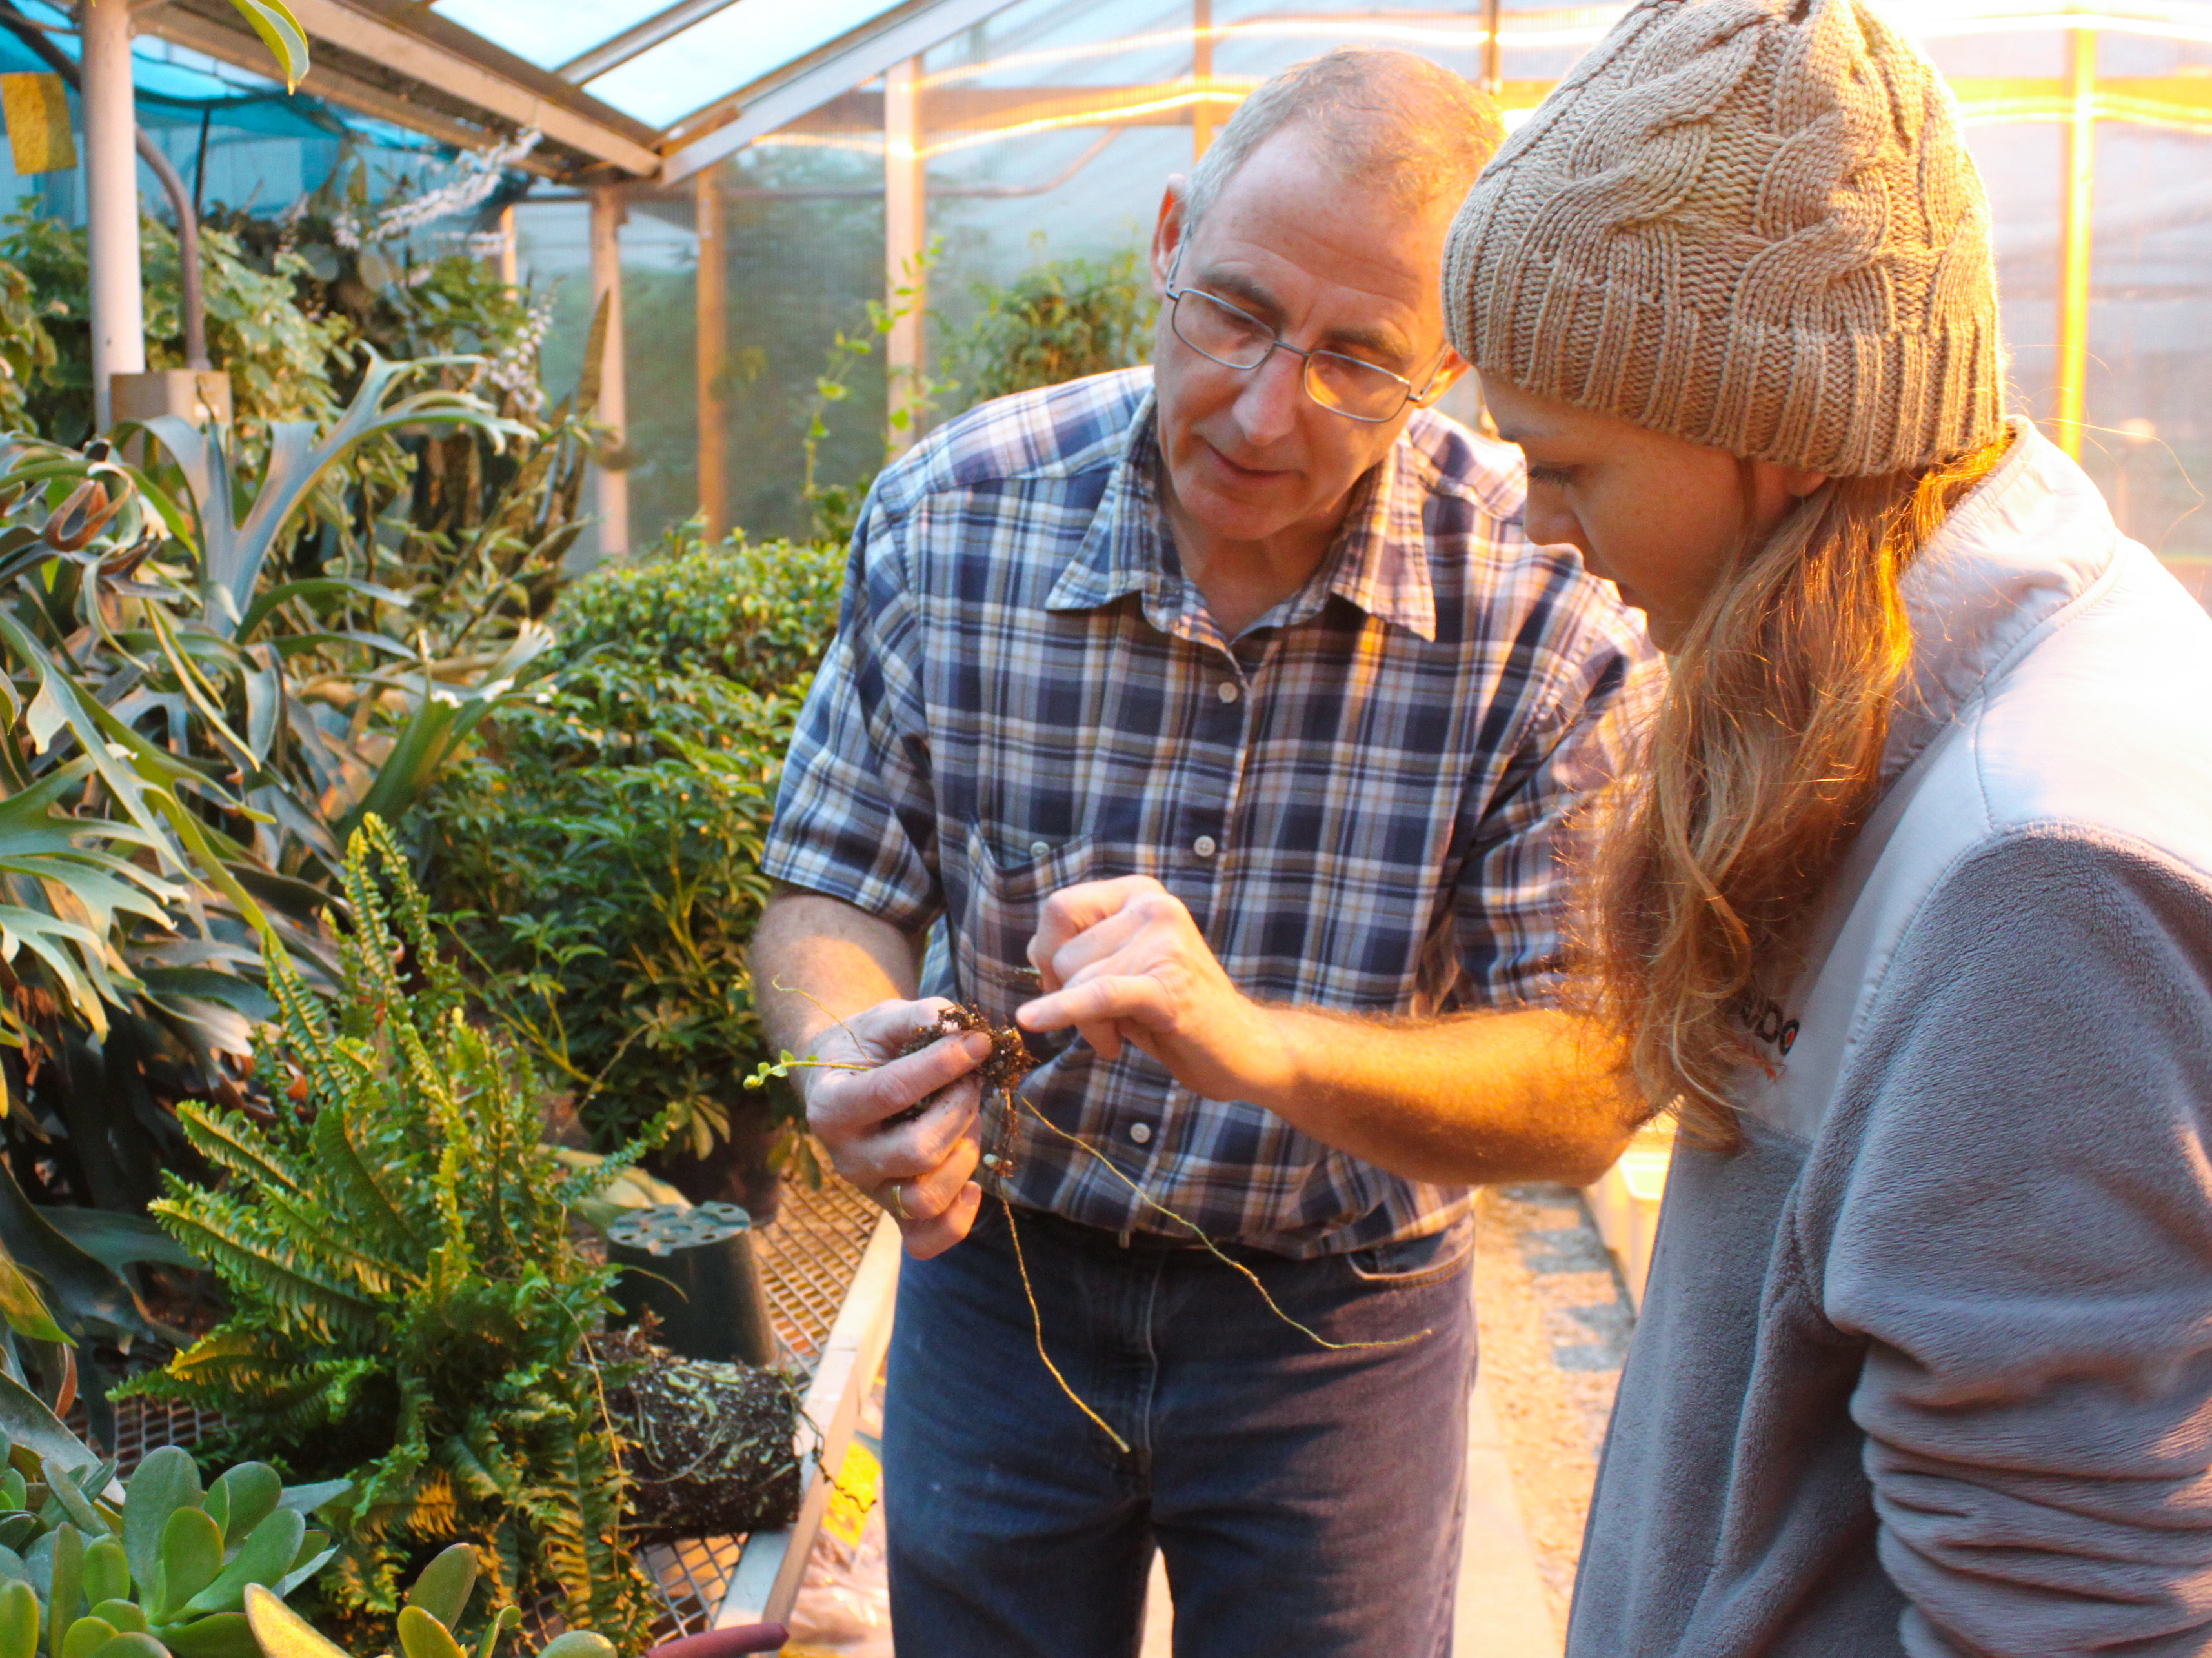 Associate Professor of Practice Stacy Adams with horticulture student Colleen Ocken.